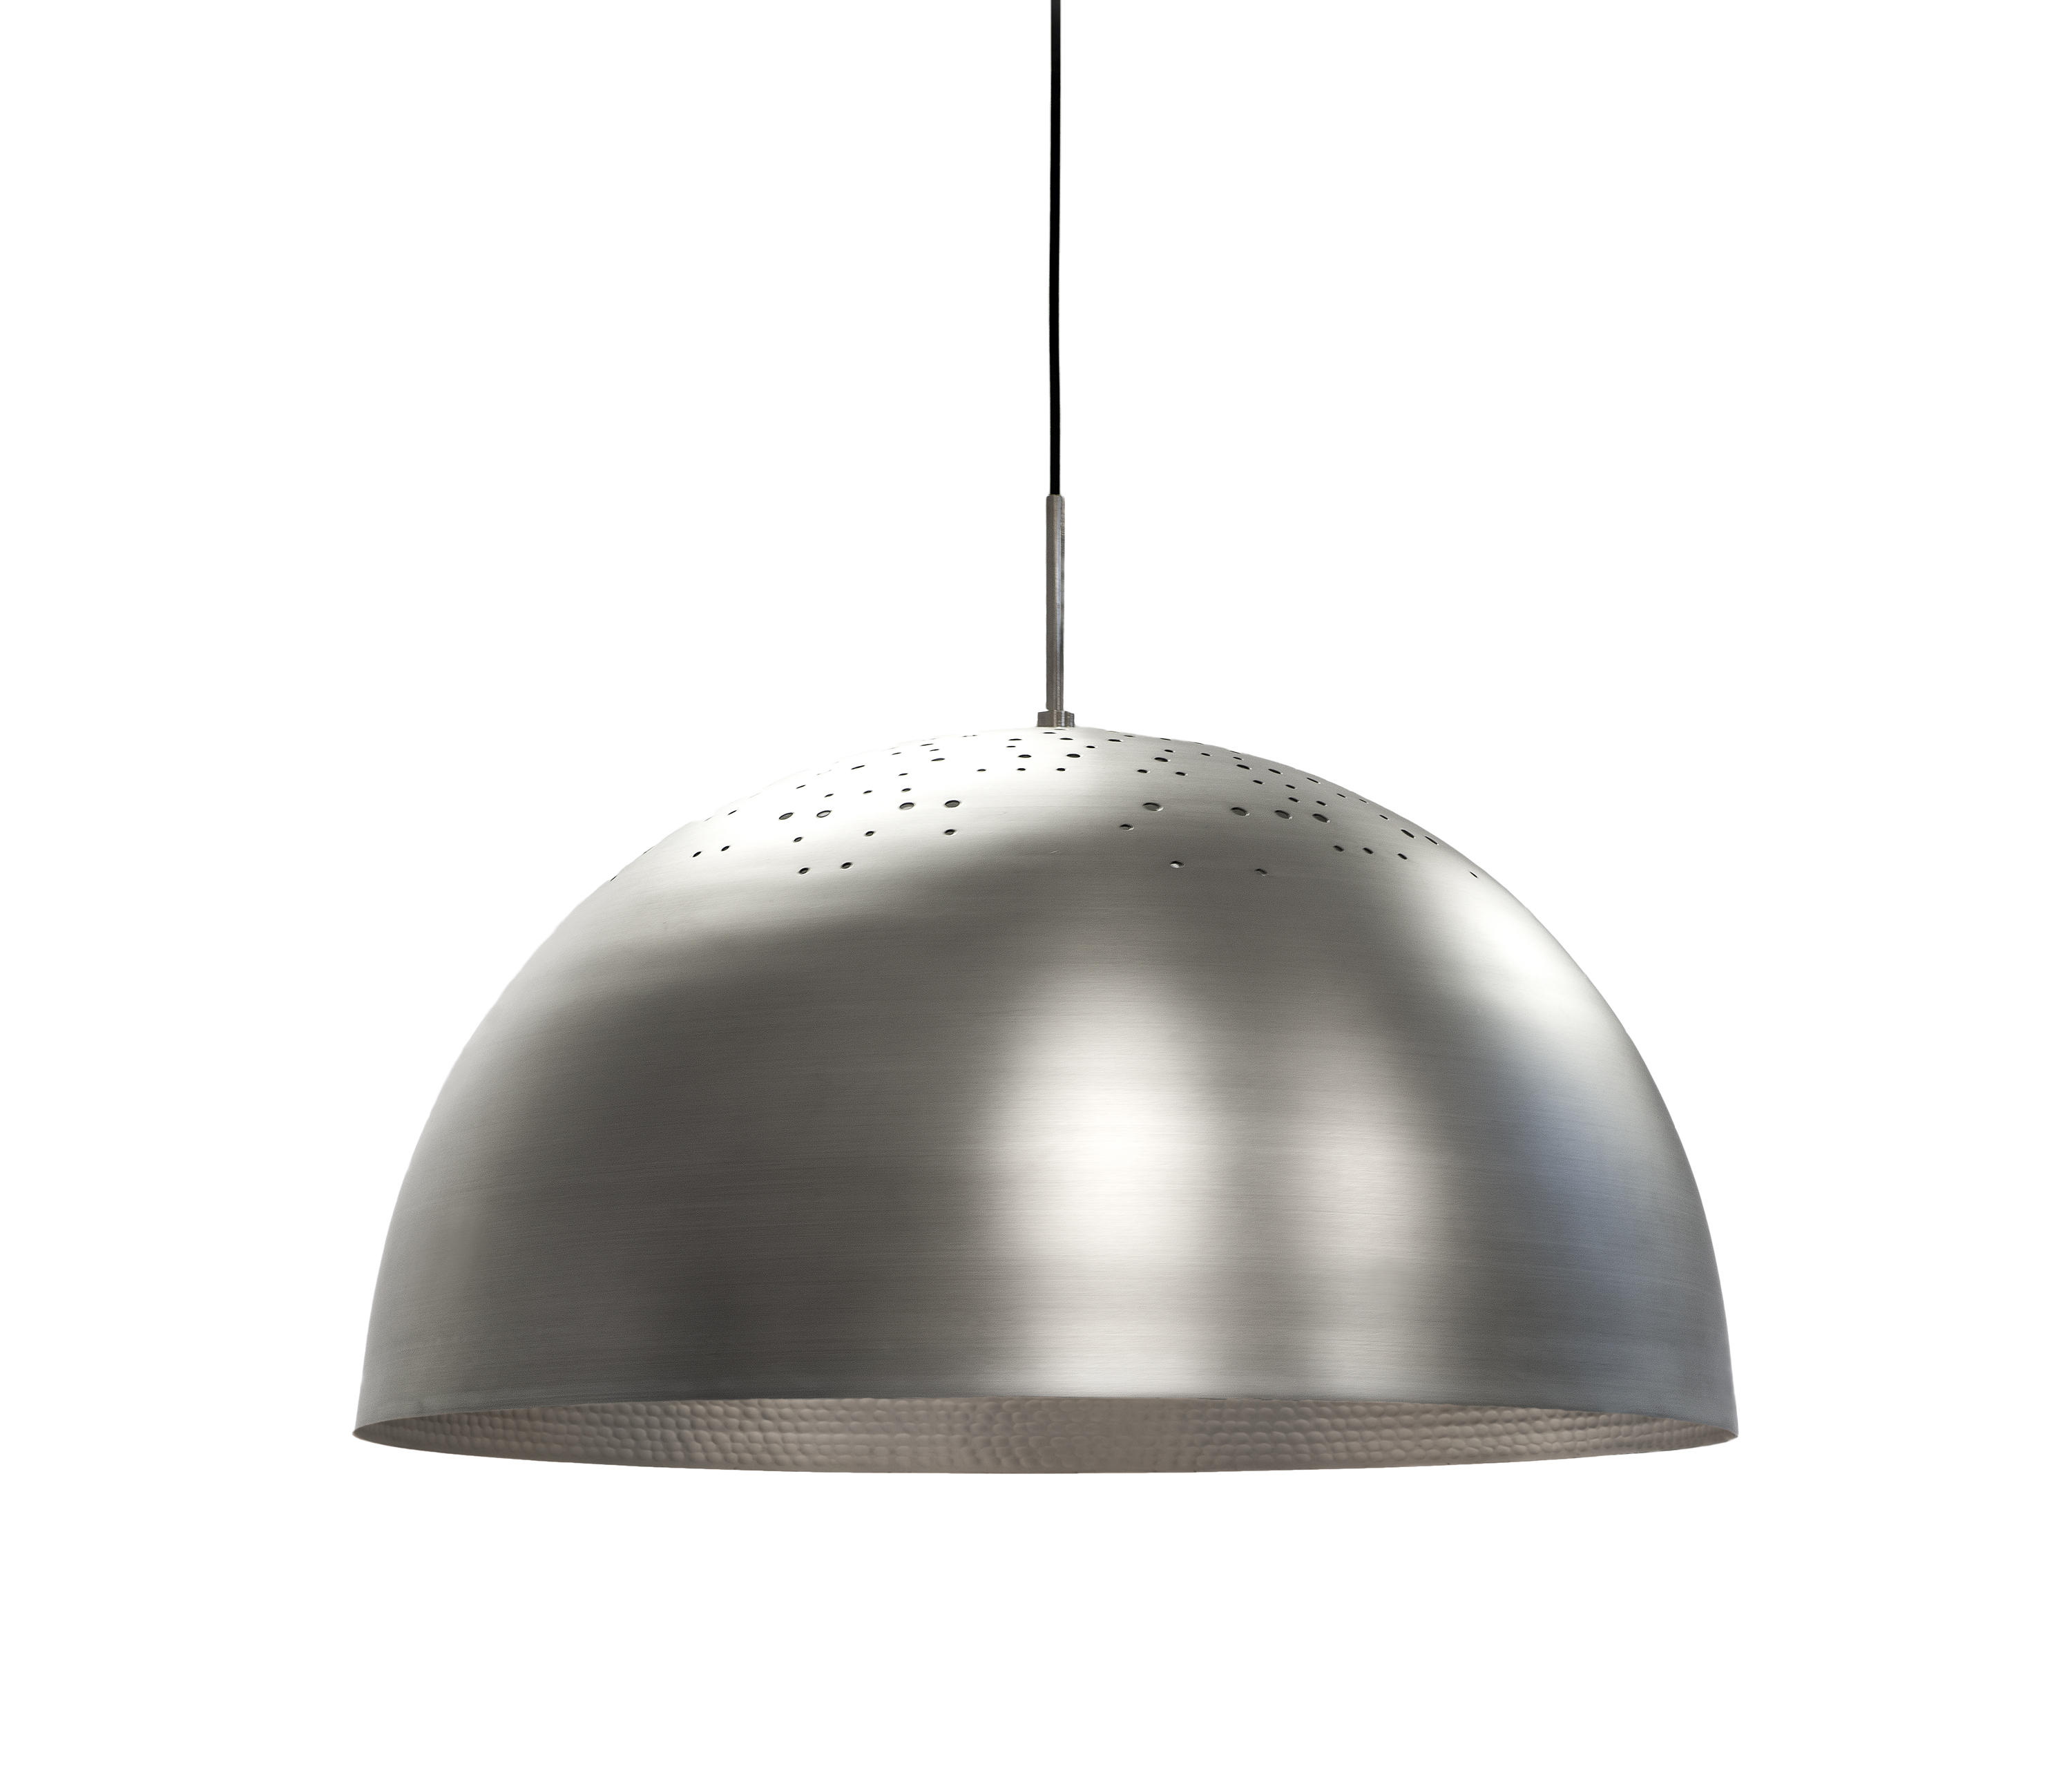 Shade Light alu by Mater | General lighting  sc 1 st  Architonic & SHADE LIGHT ALU - General lighting from Mater | Architonic azcodes.com